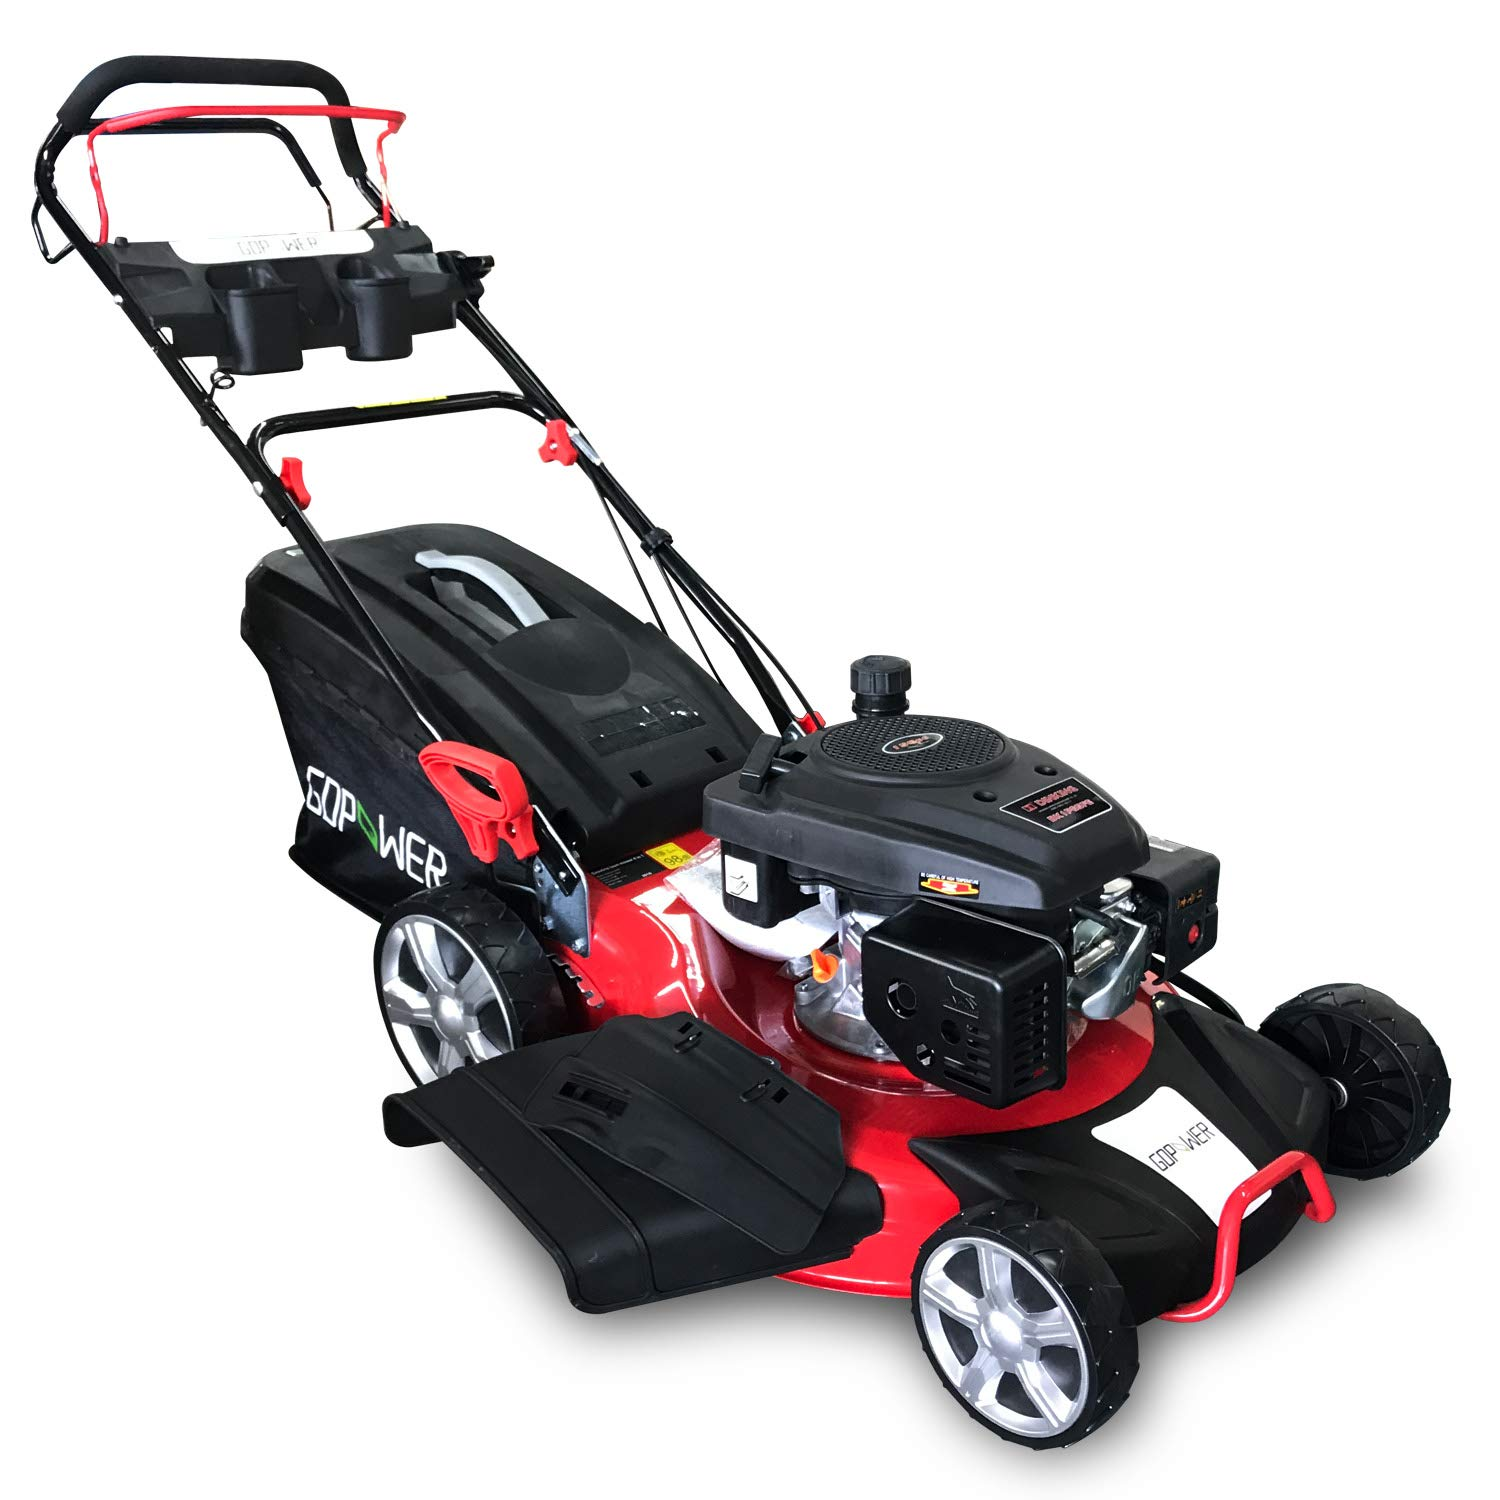 GDPOWER 150cc 4-in-1 Self-Propelled Gas Lawn Mower with 20-Inch Deck and Recoil Start System